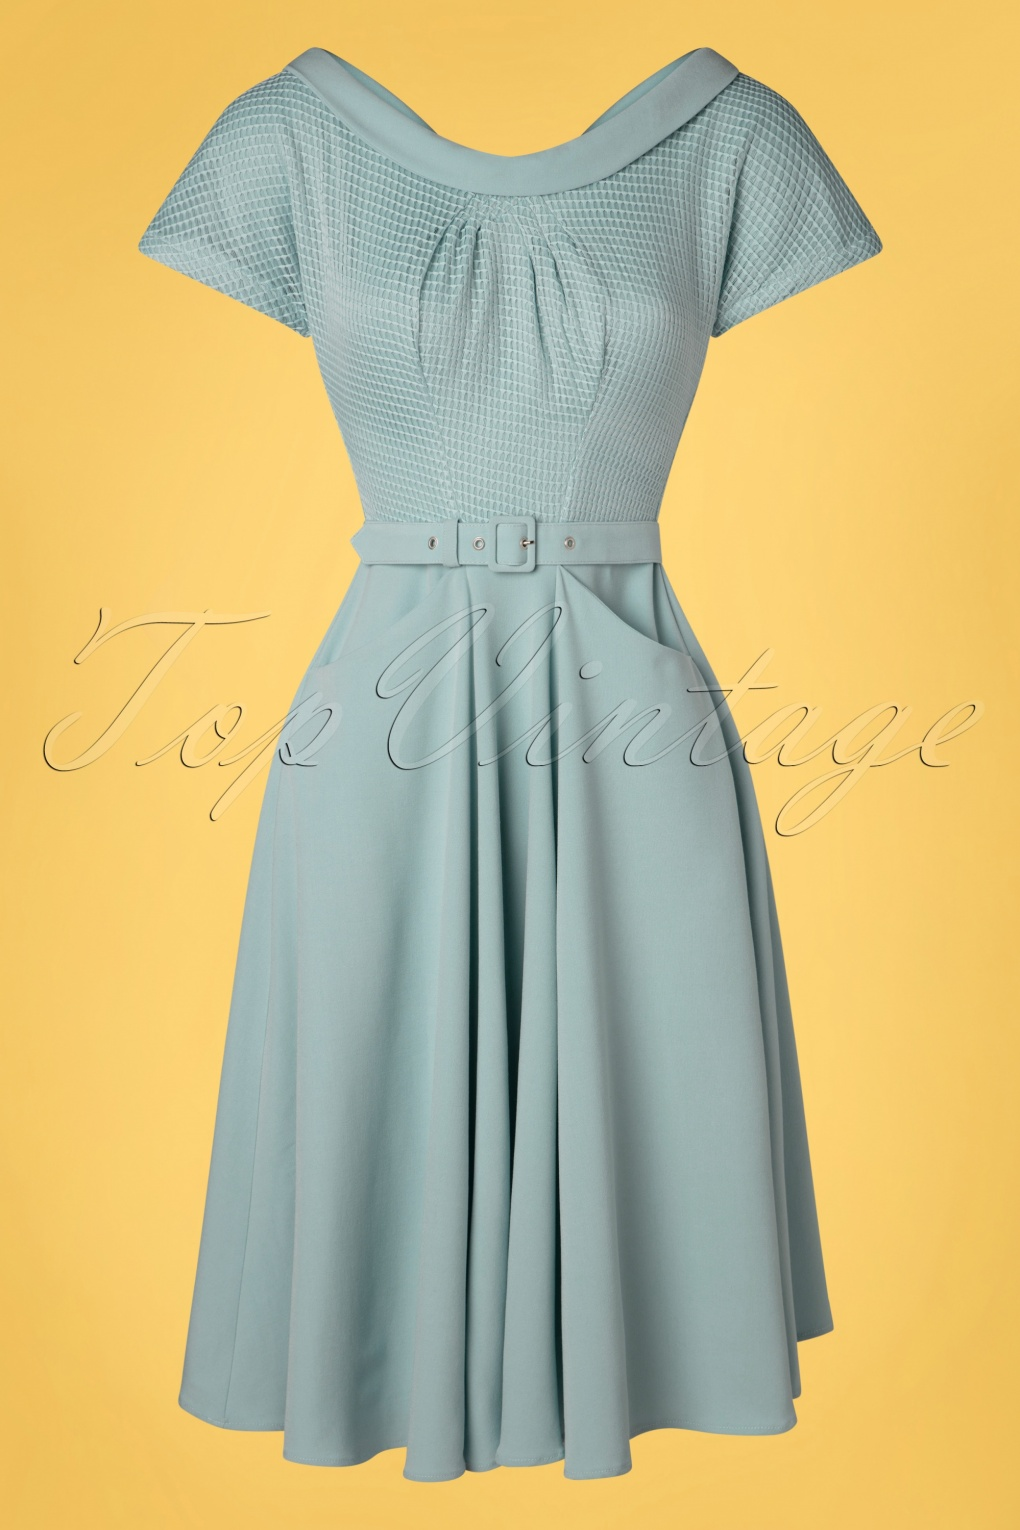 1950s Dresses, 50s Dresses | 1950s Style Dresses 50s Lorin Minty Swing Dress in Ice Blue £19.95 AT vintagedancer.com